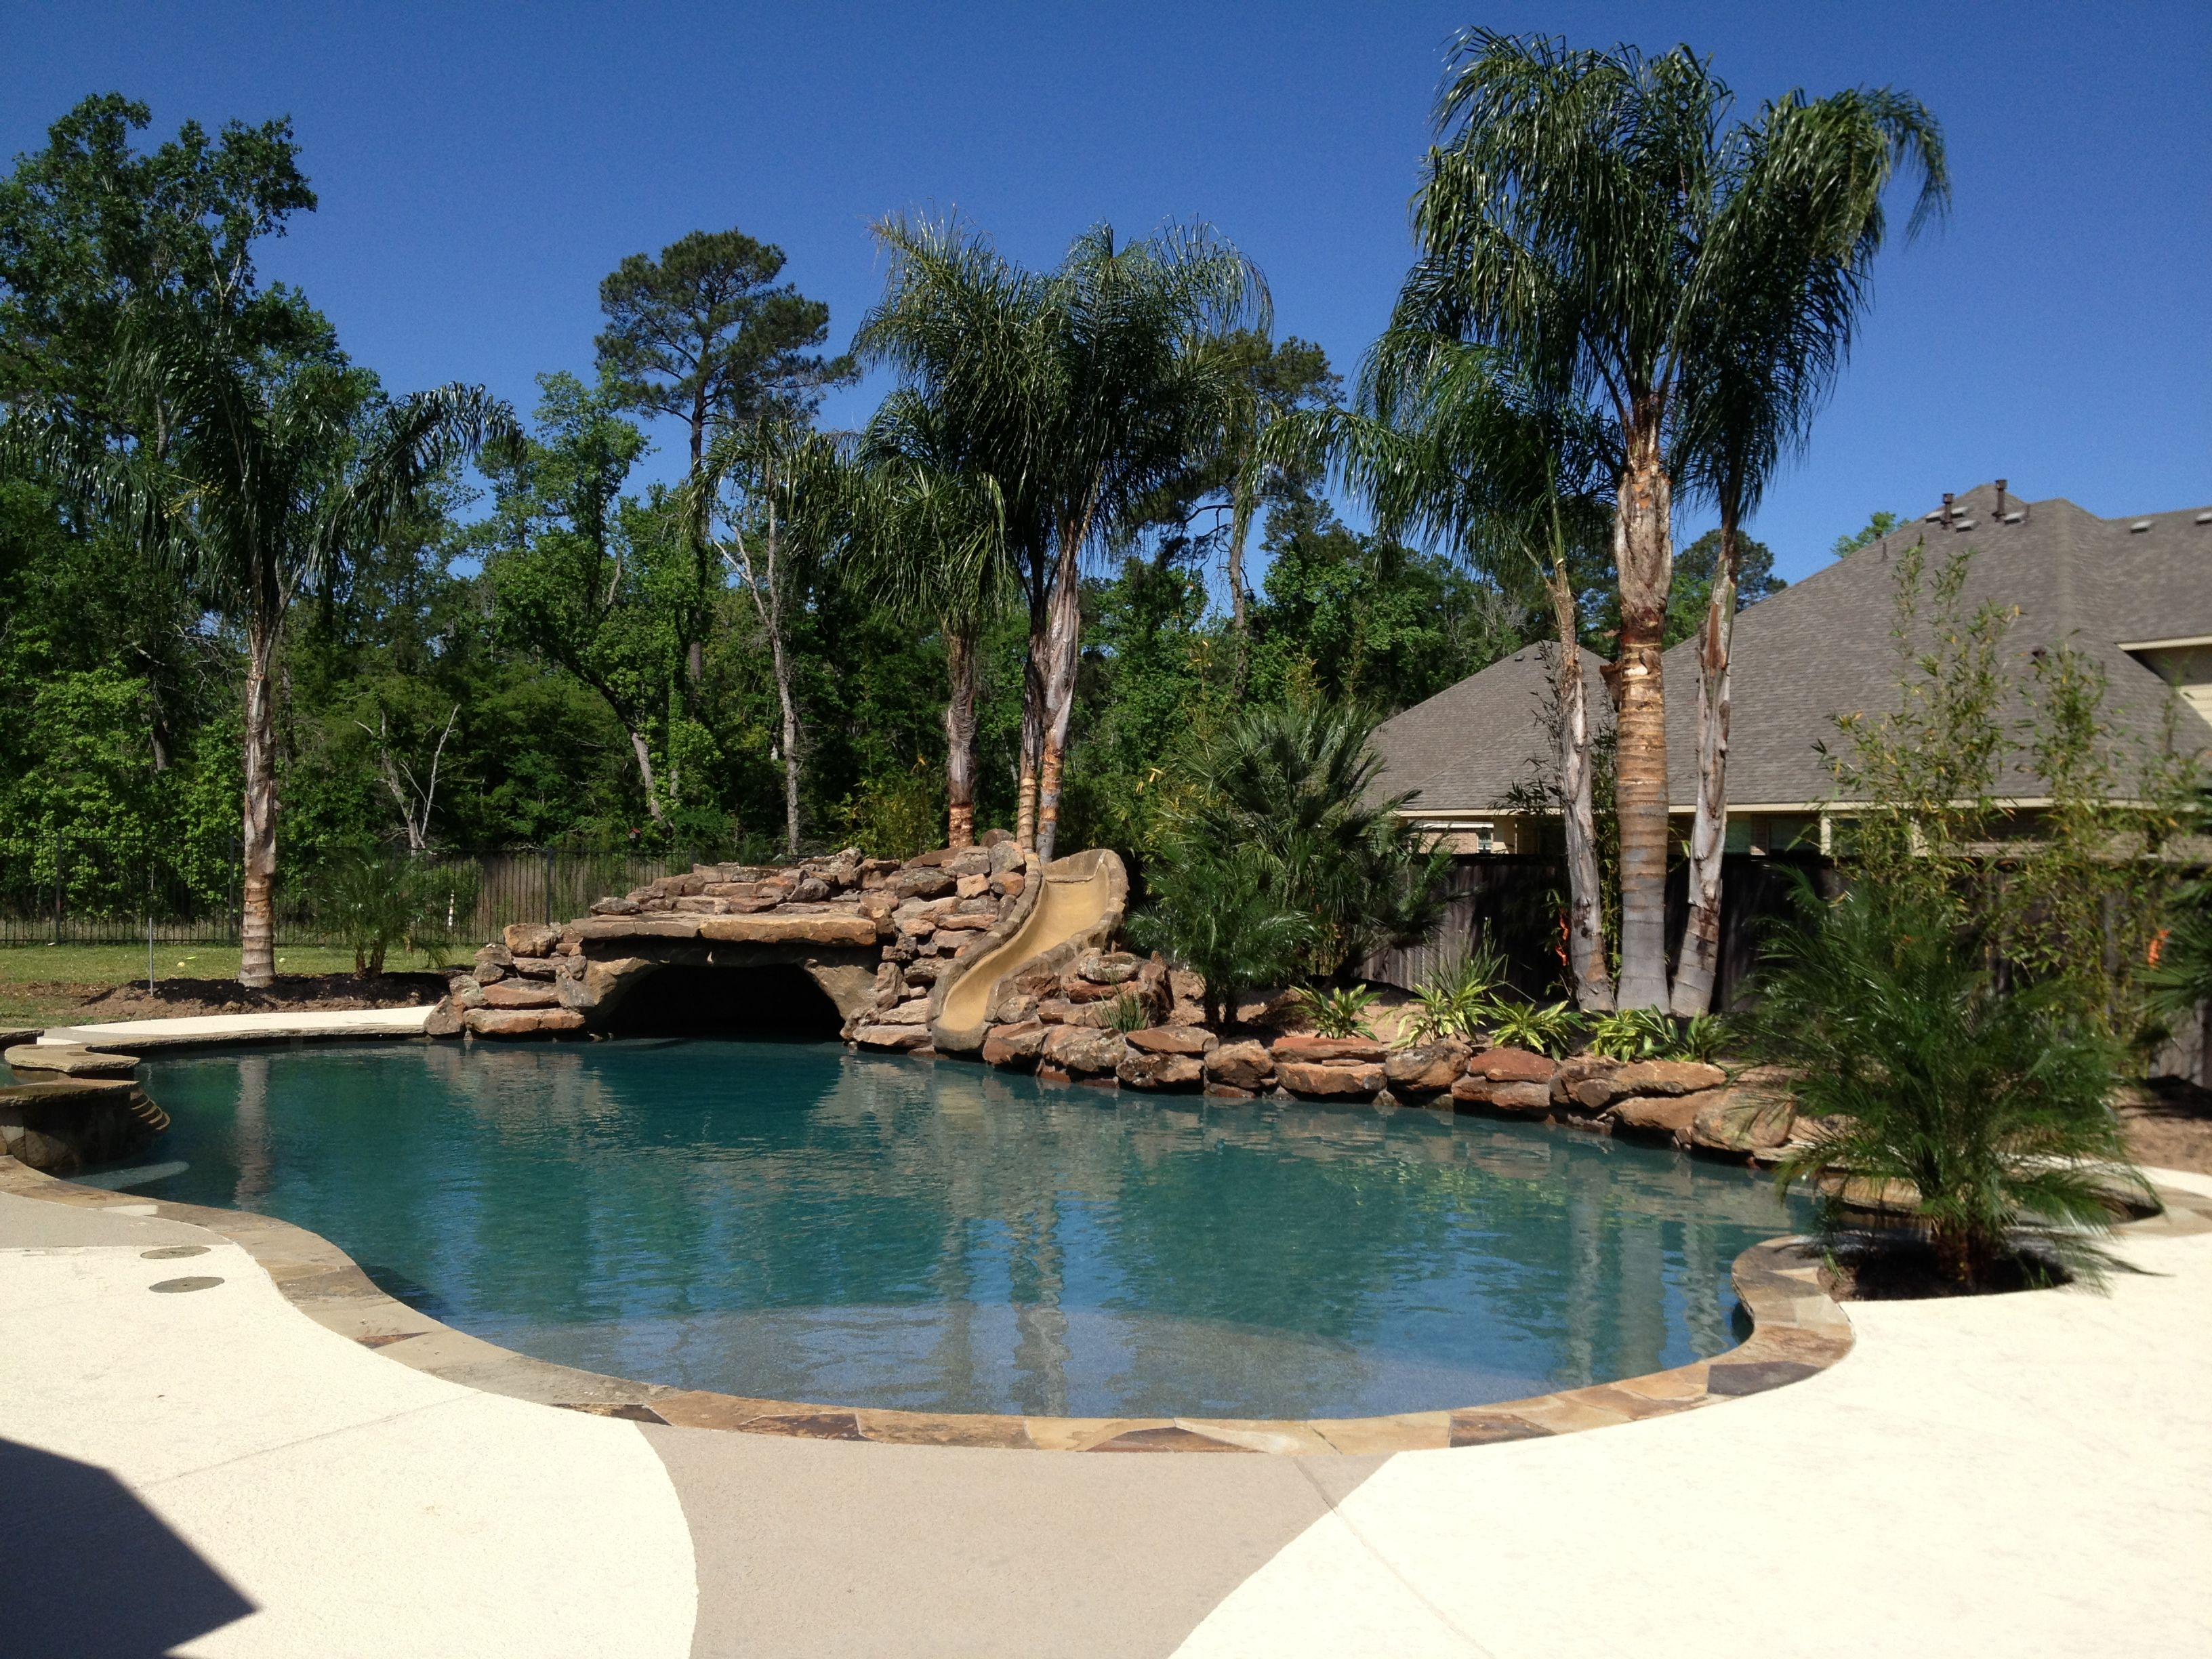 Signature Pool Conroe, Pool Idea Magnolia : Caytech Pools   Signature Pool, Rock  Slide